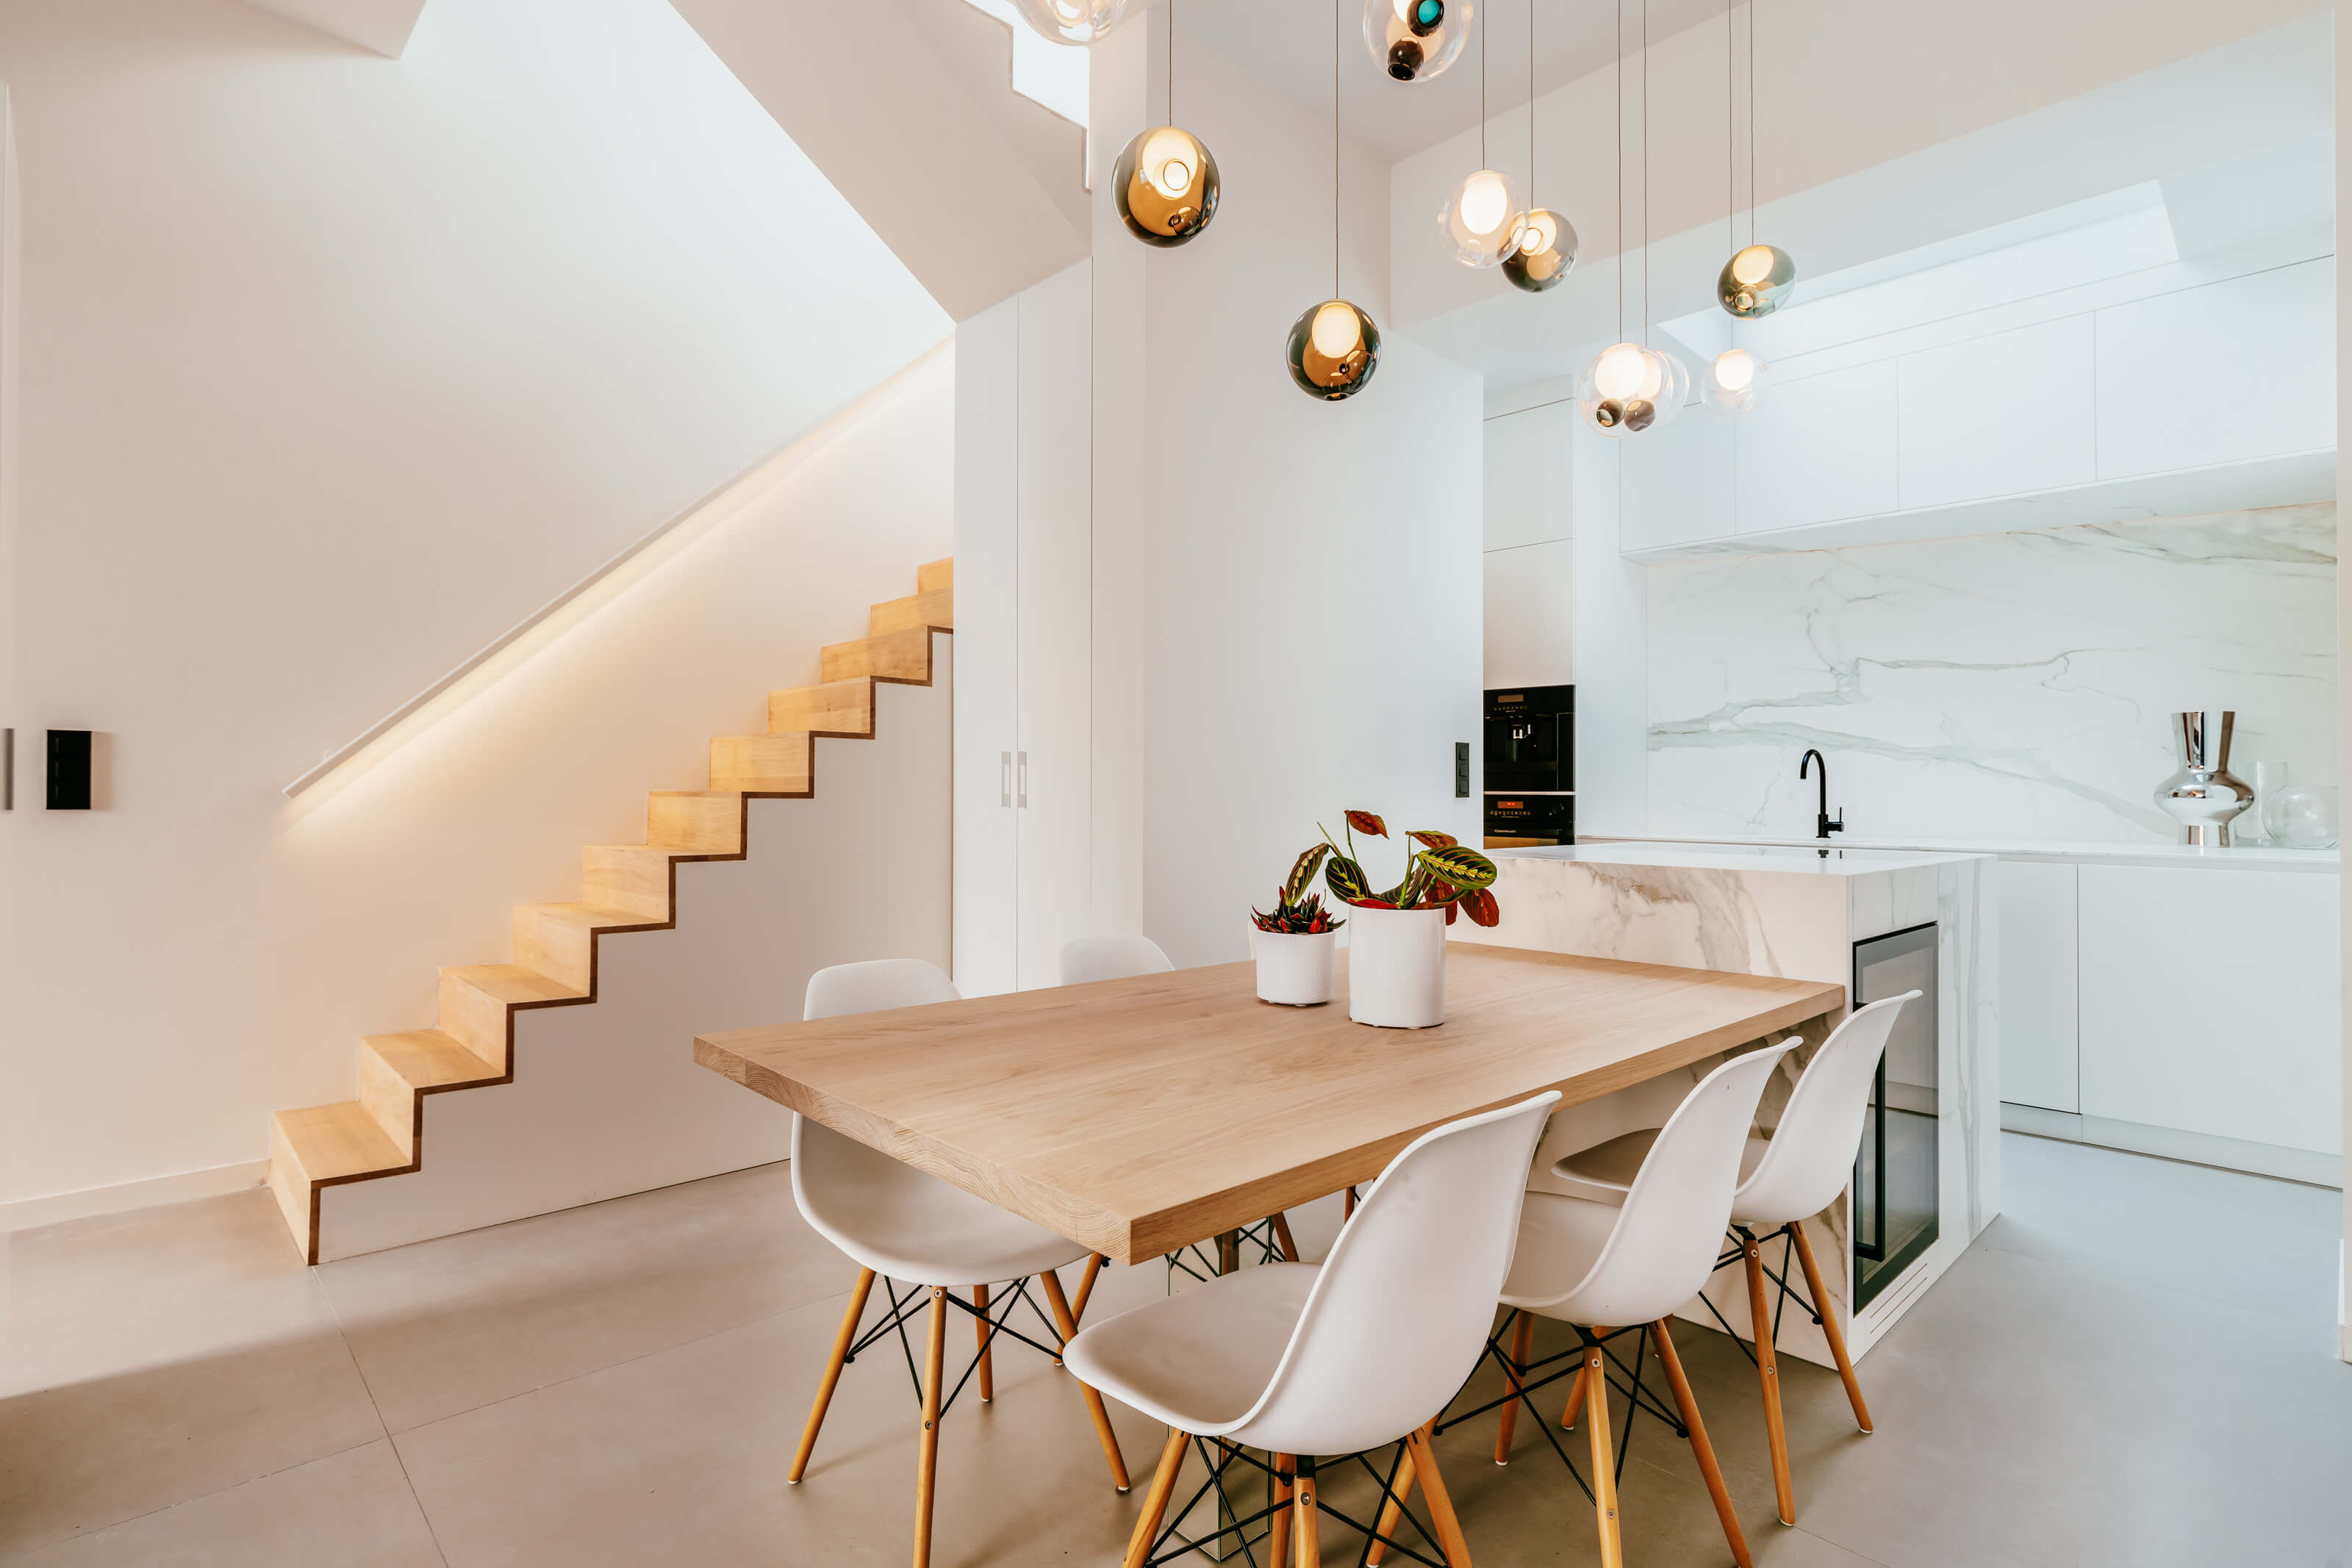 Neolith Sintered Stone in a Brussels apartment